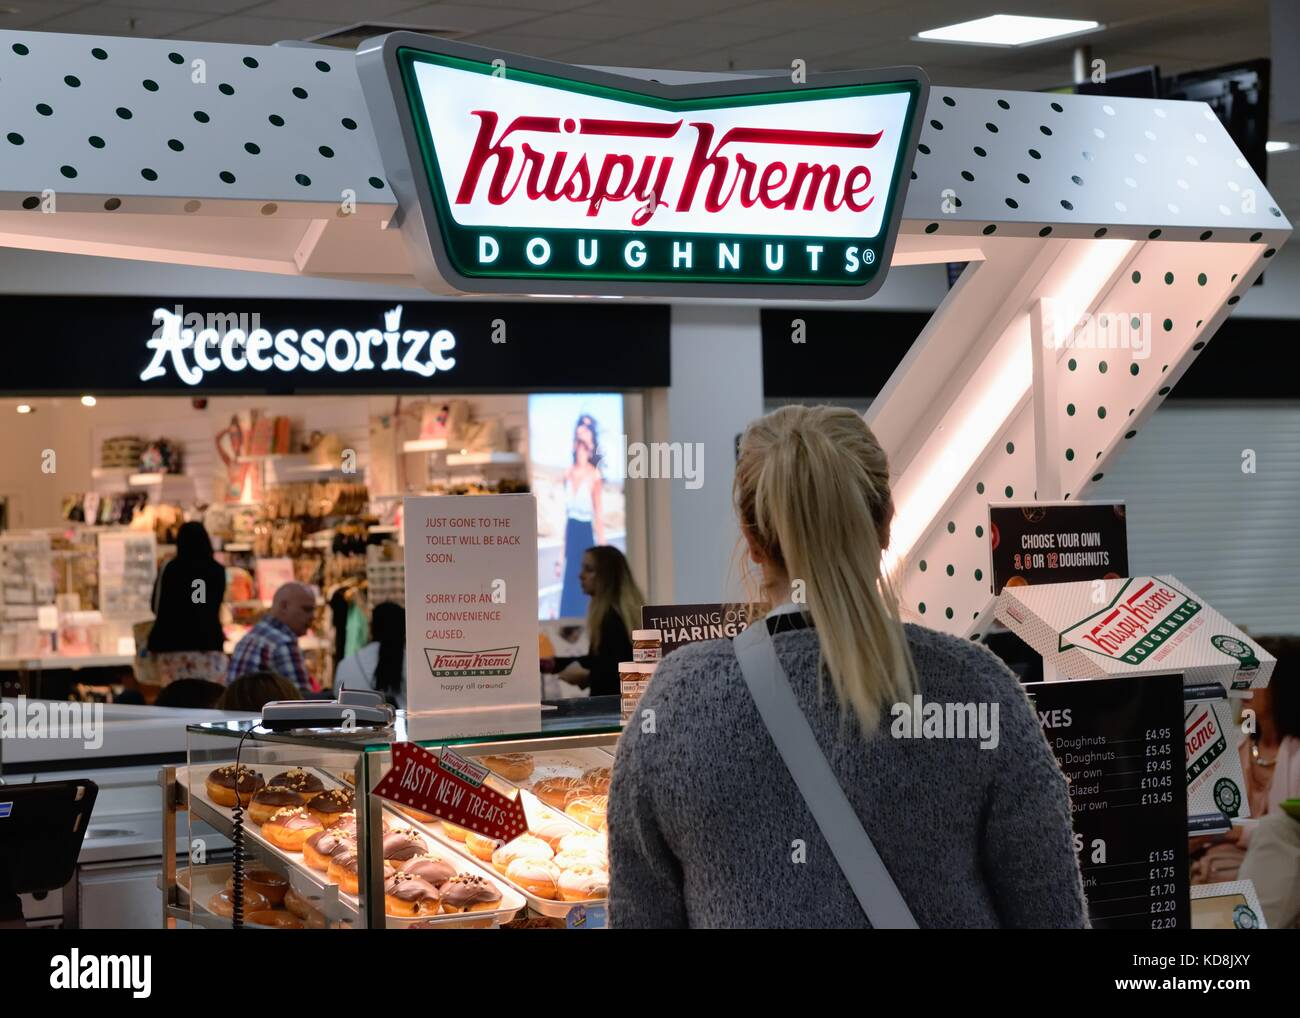 A woman standing by a Krispy Kreme doughnut stand at Glasgow international airport, Scotland, UK - Stock Image